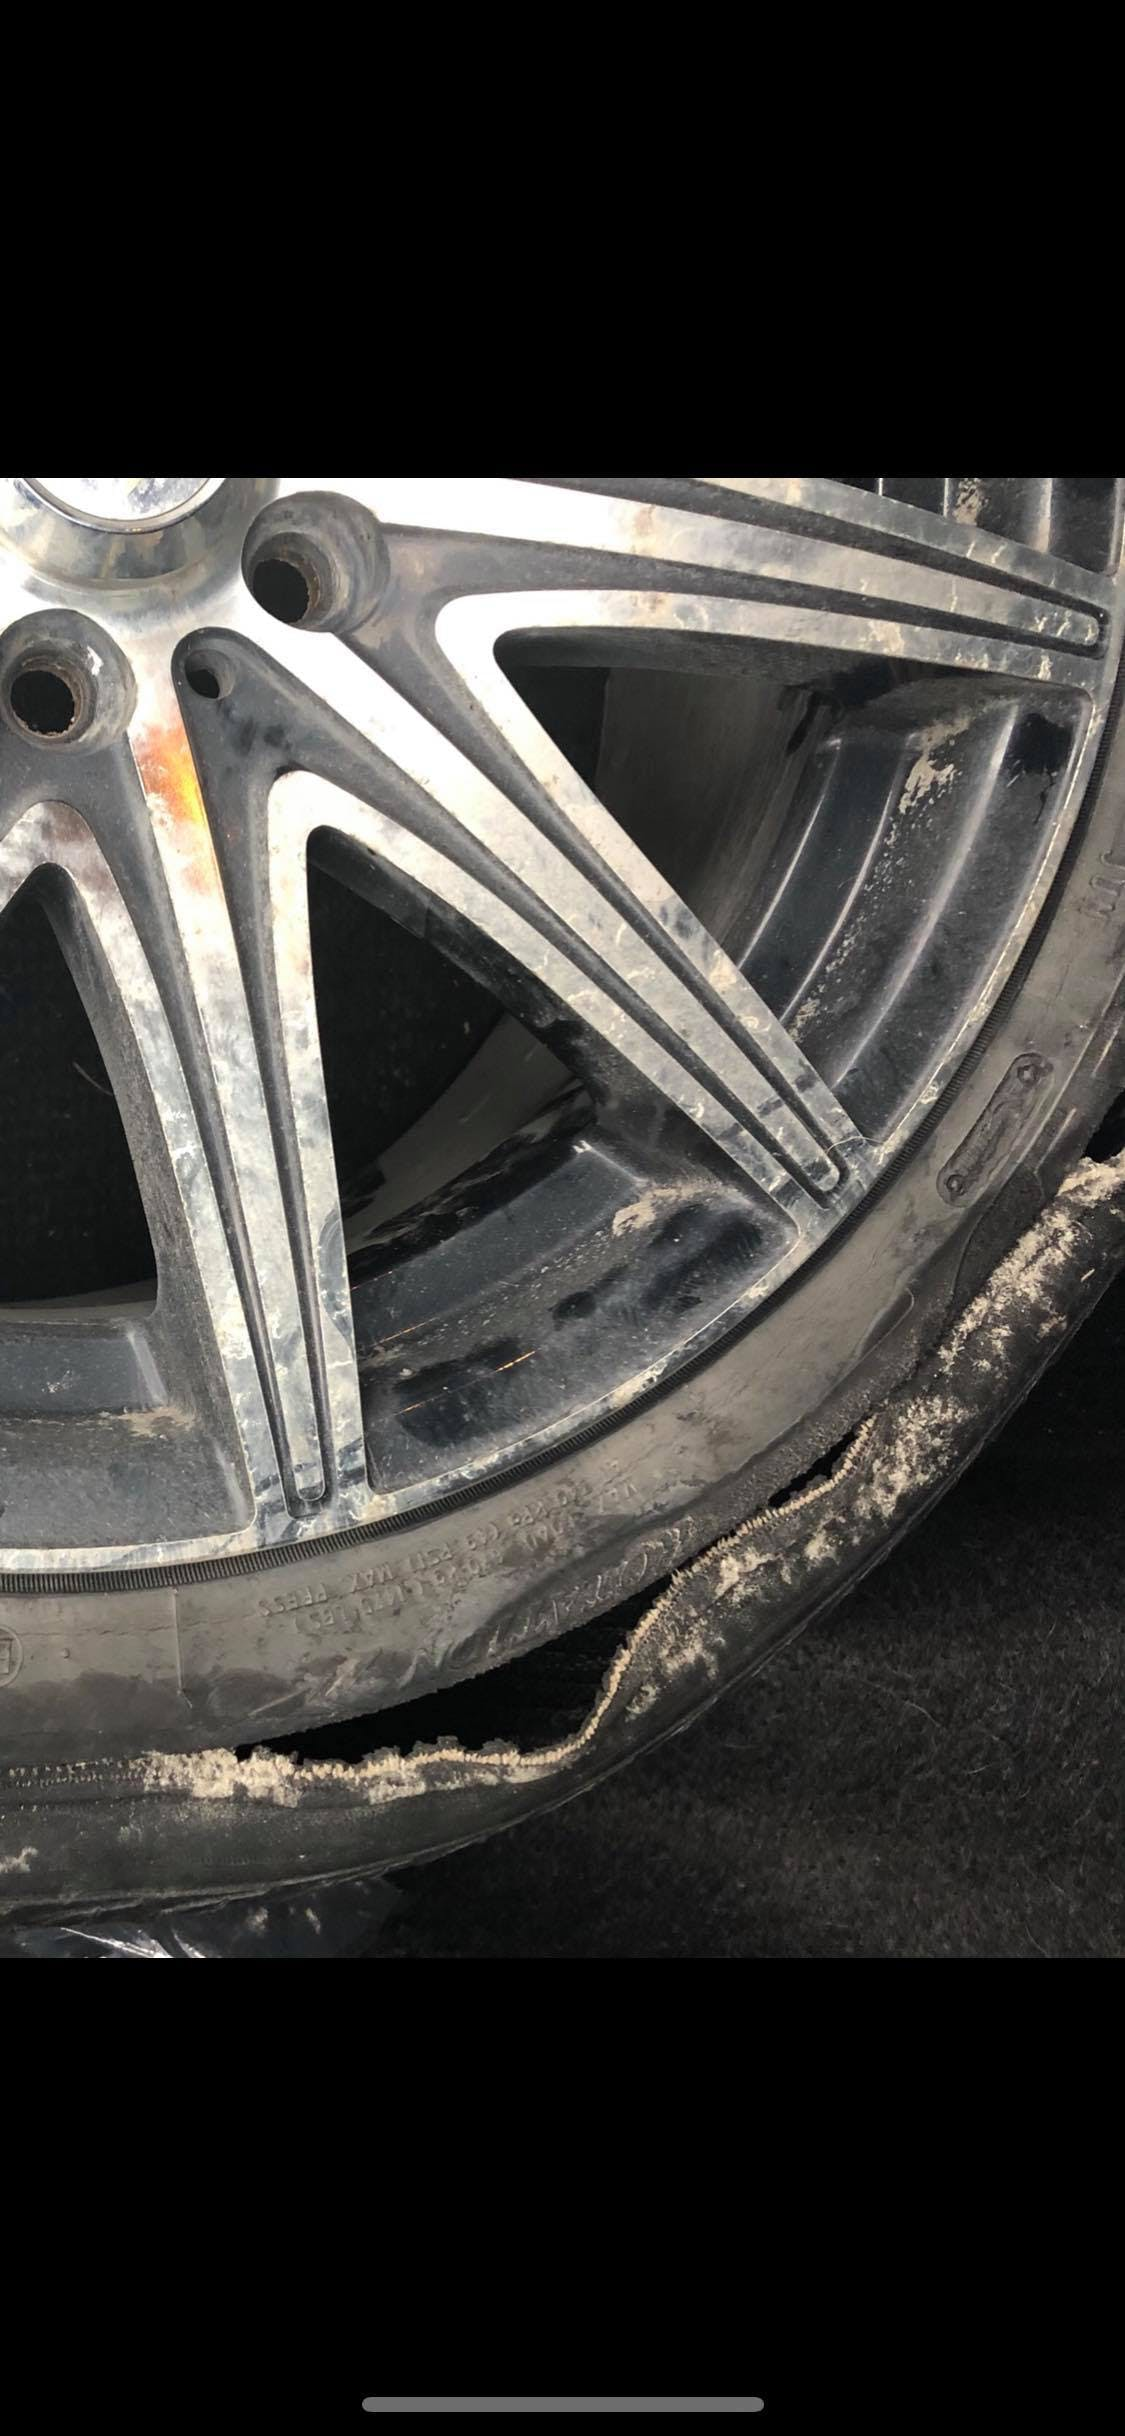 Frances woke up one morning in December to find her tire slashed and she reported it to police. She has no way of knowing who slashed her tire, however, is worried about possible escalating violence because there were also a new slew of abusive emails from her ex that morning. CONTRIBUTED